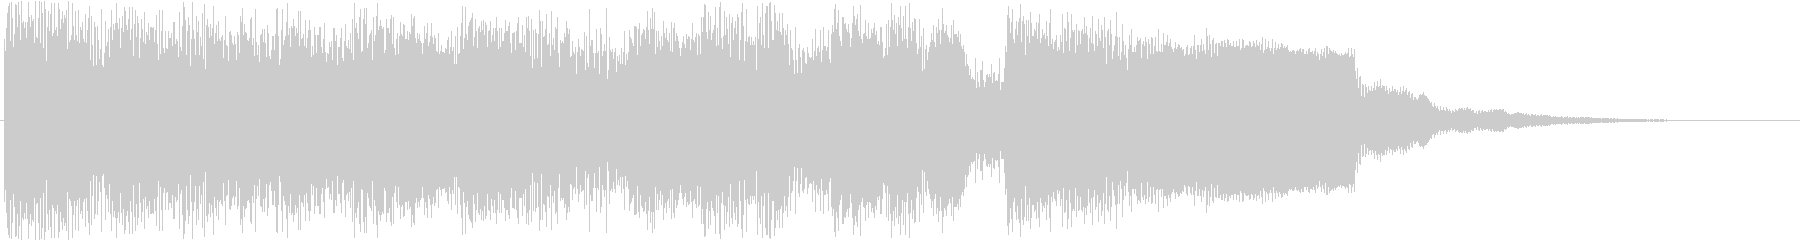 Cute jingle for recorder and piano's unreproduced waveform